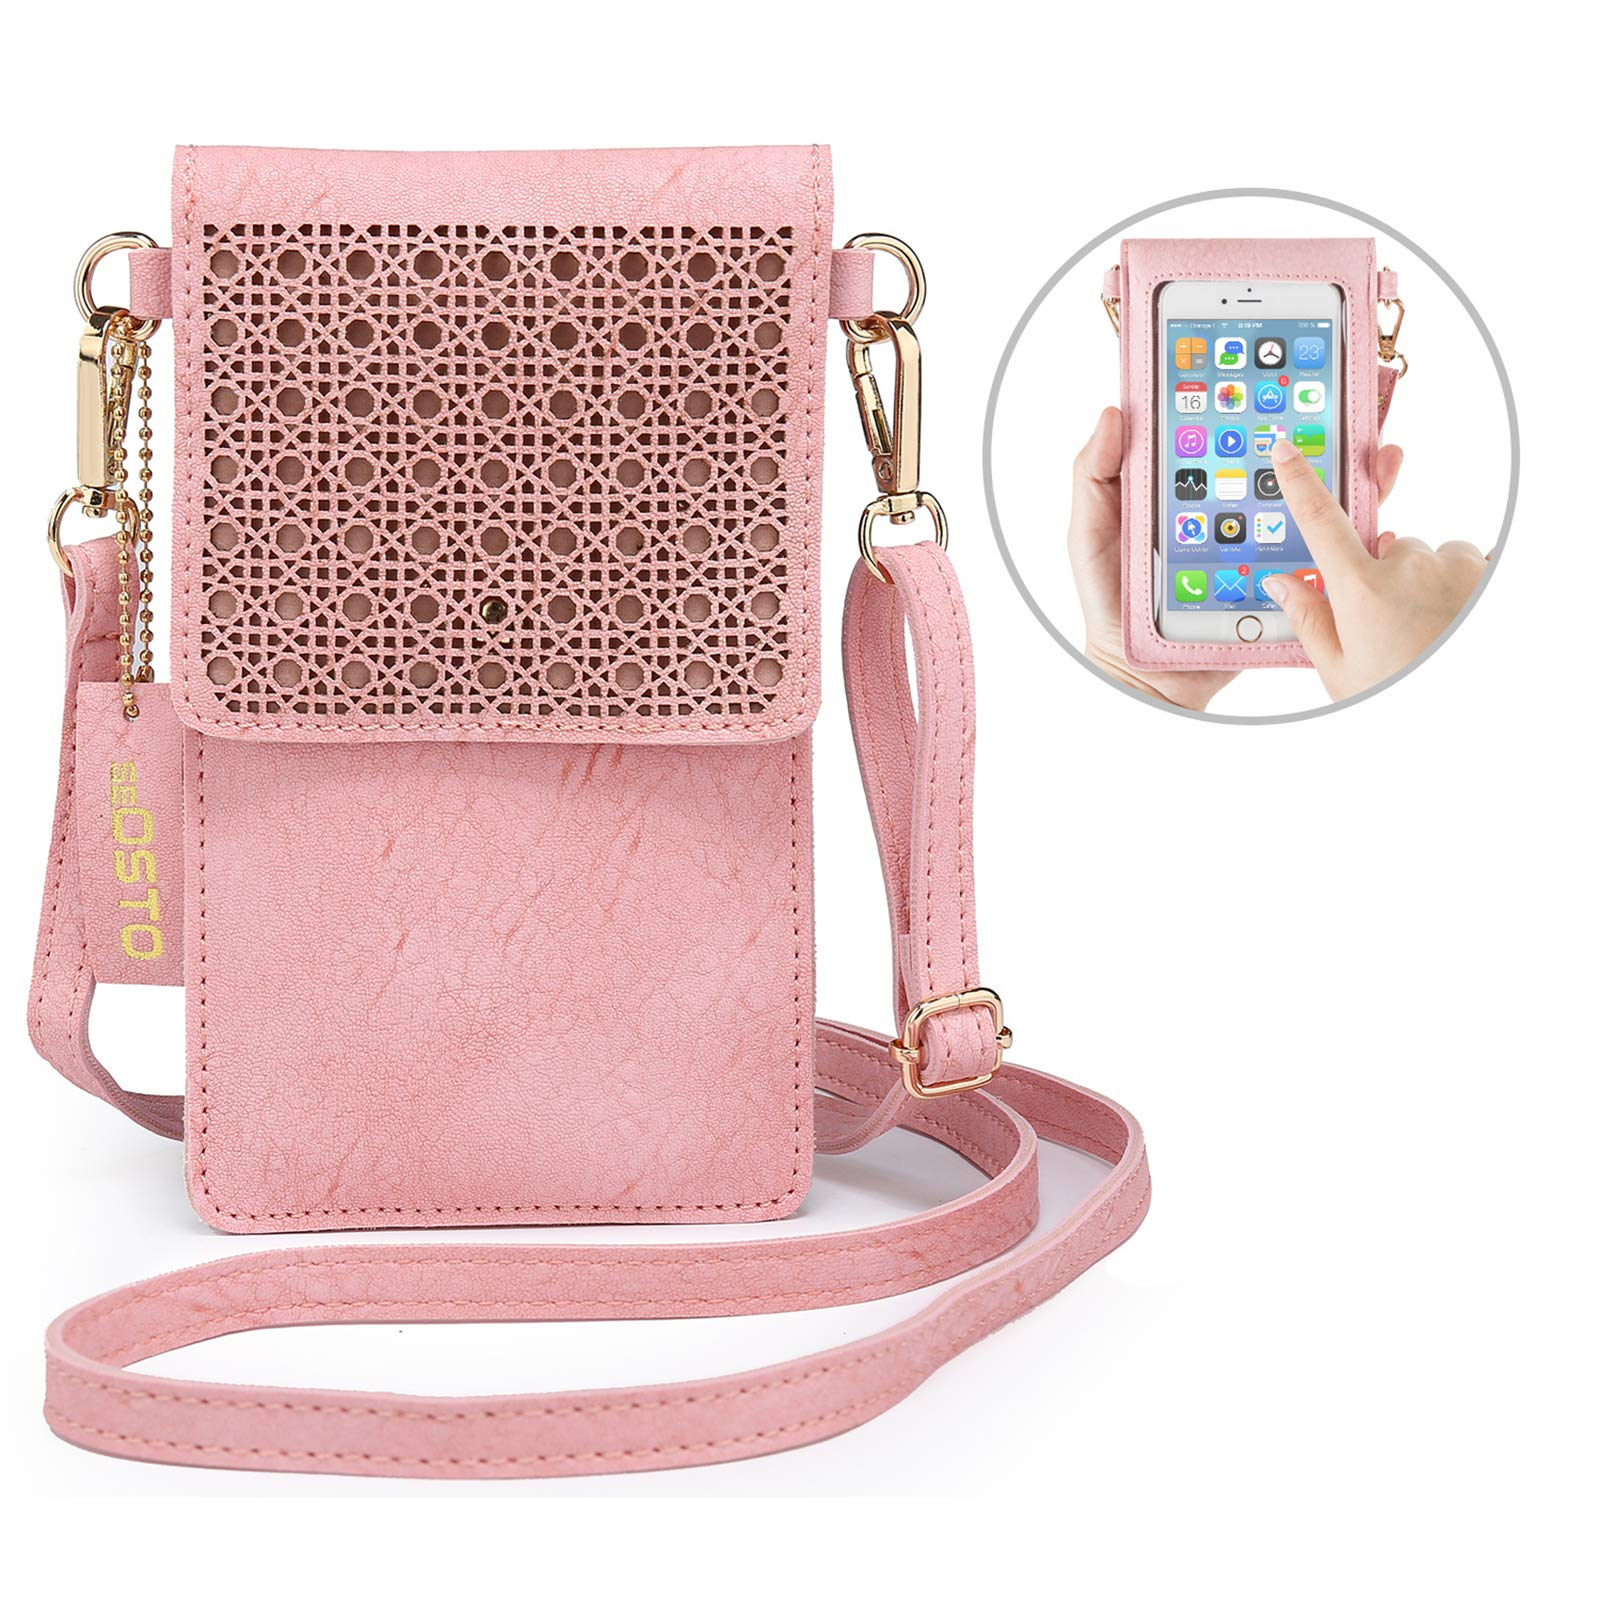 seOSTO Small Crossbody Bag, Cell Phone Purse Smartphone Wallet with 2 Shoulder Strap Handbag for Women (pink)